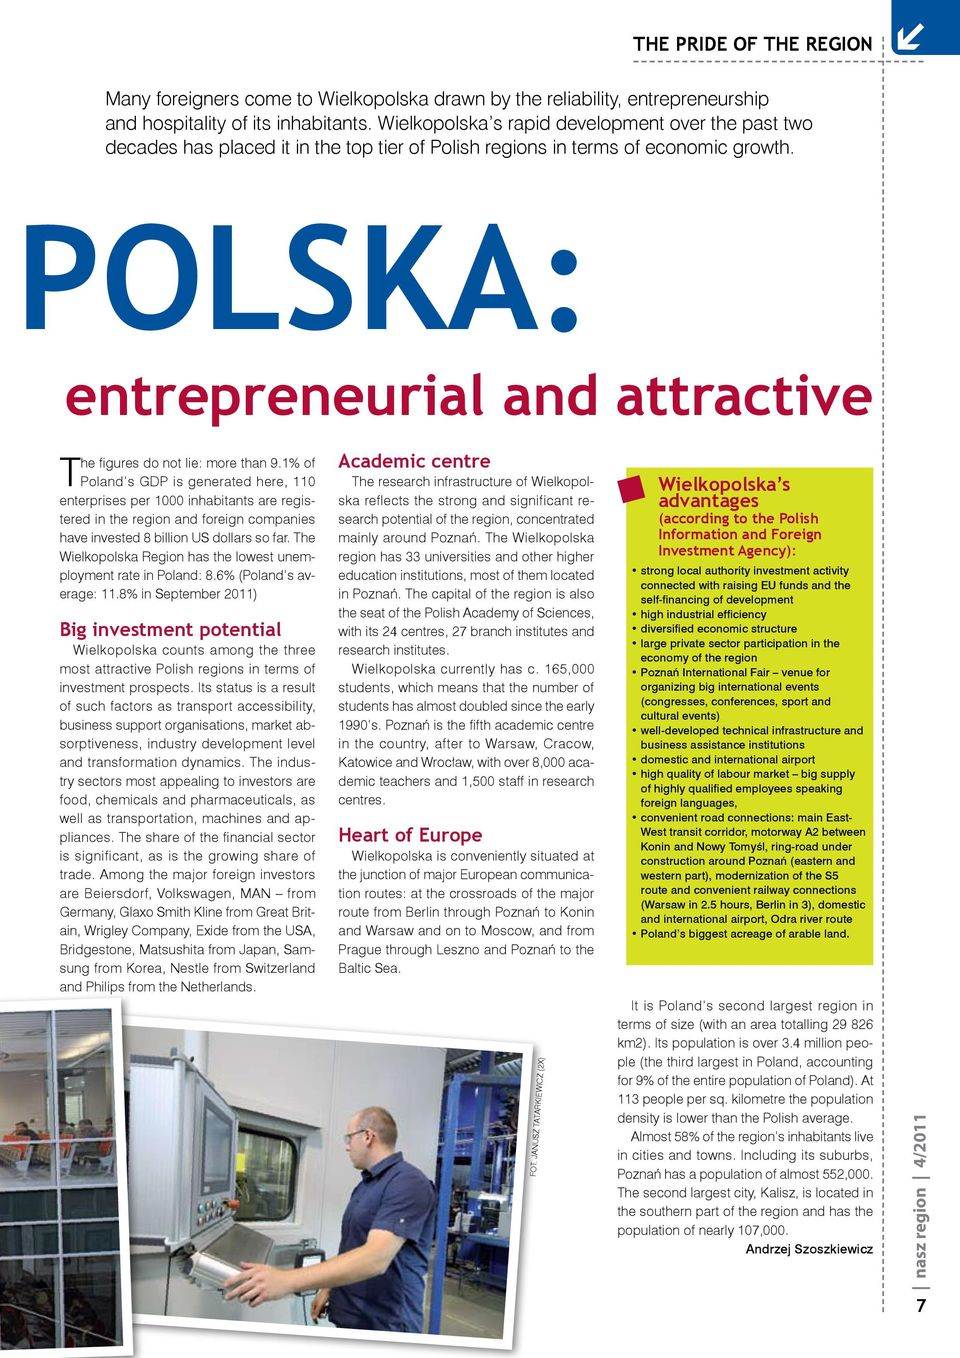 polska: entrepreneurial and attractive The figures do not lie: more than 9.